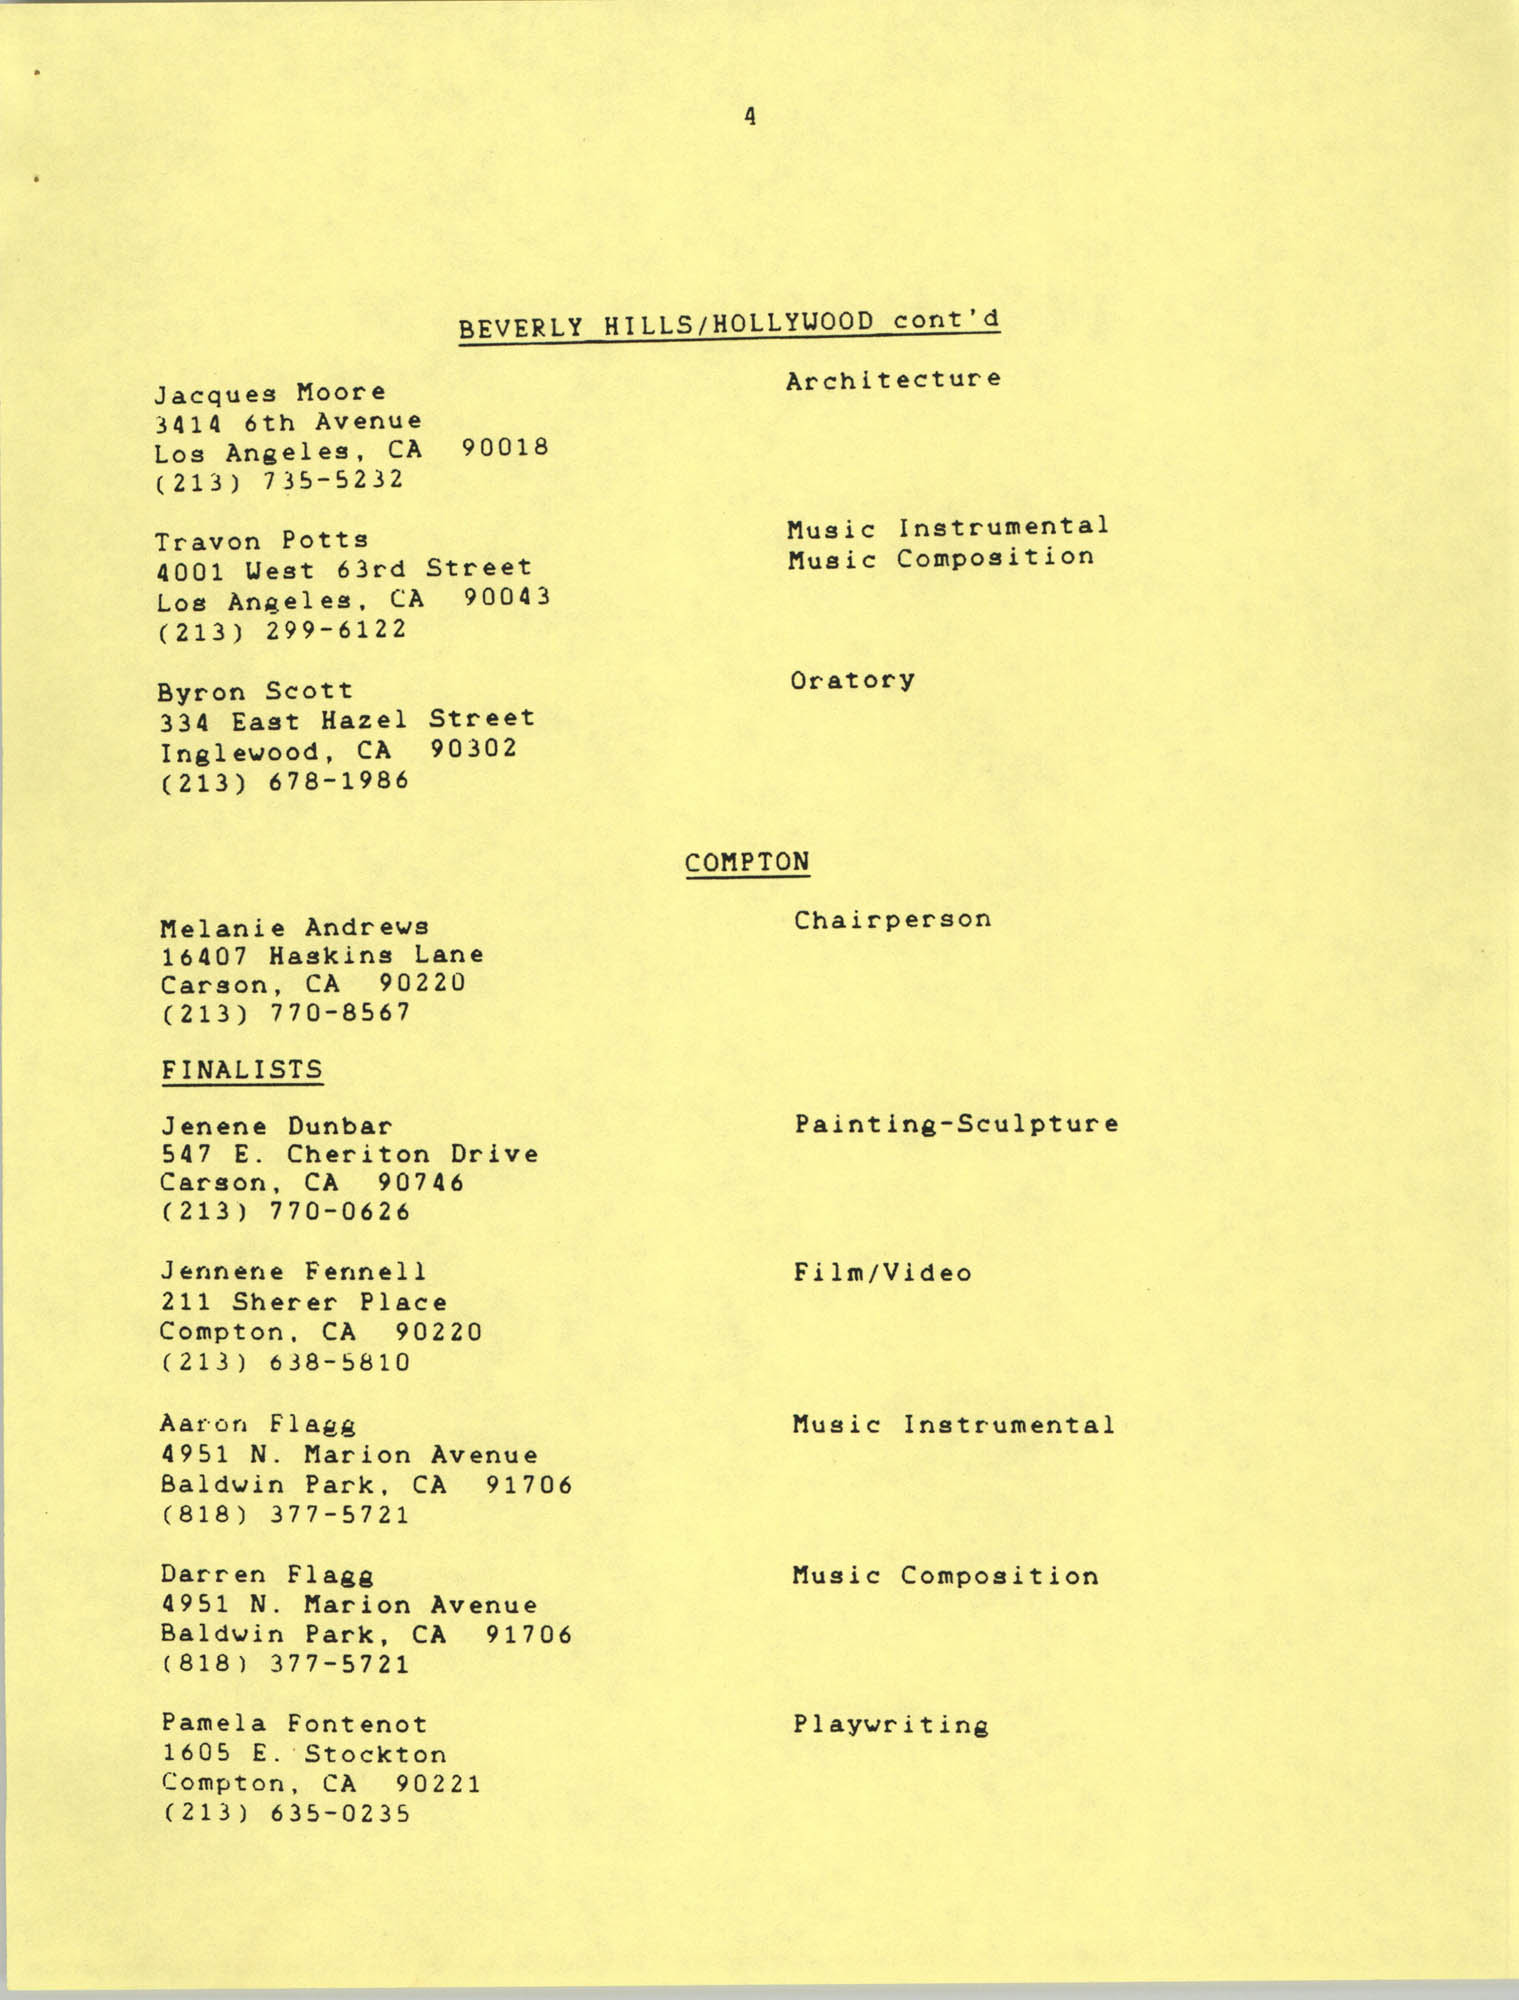 1987 Act-So Contestants, NAACP West Coast Region, Page 4